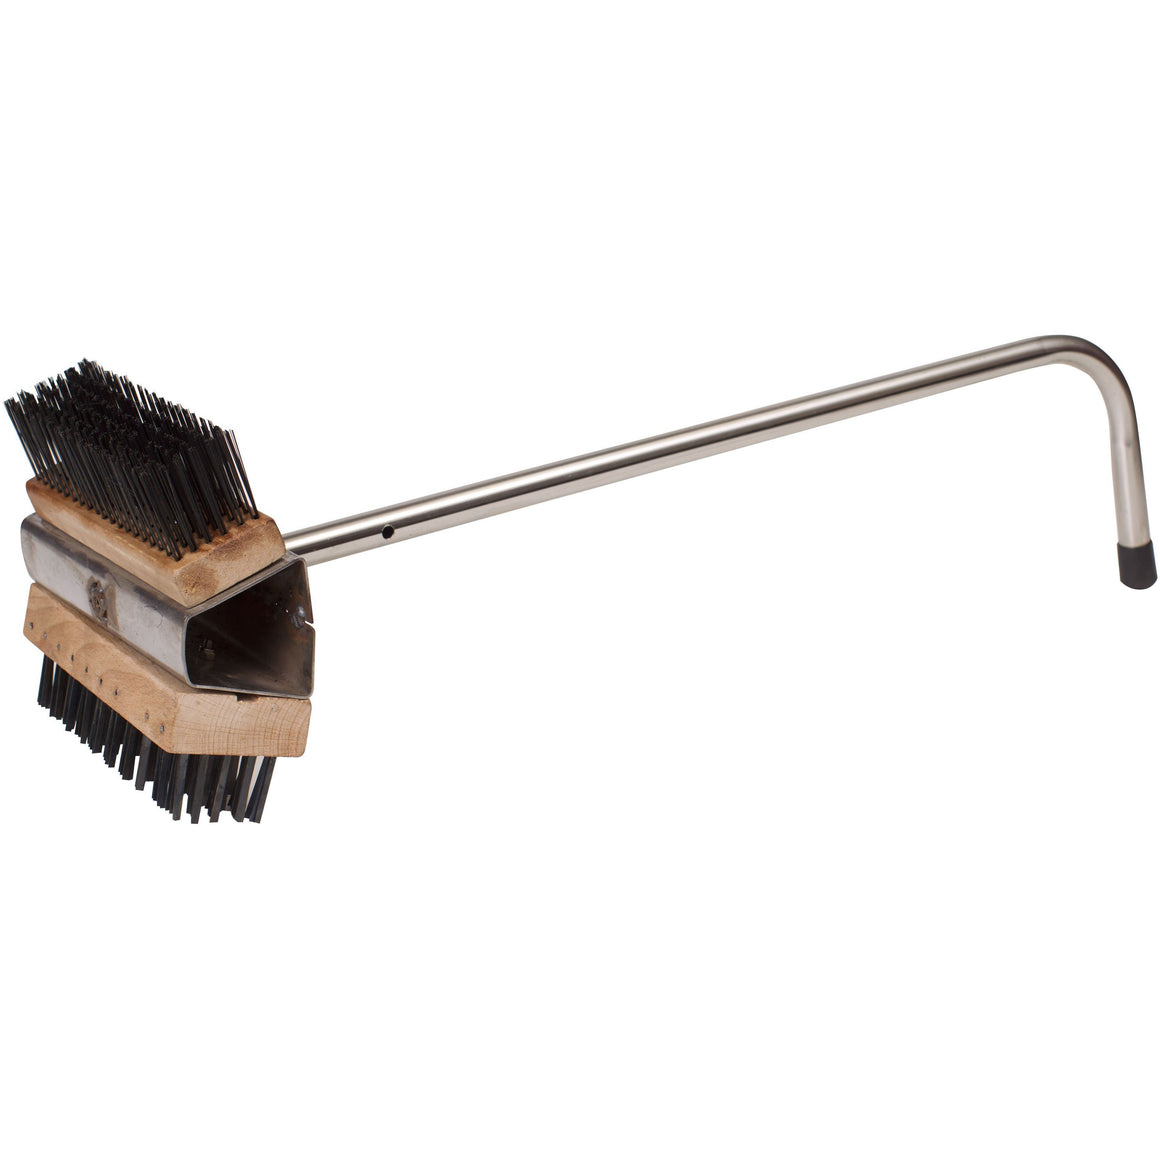 "Winco - BR-21 - Wire Oven Brush, Dual Headed, 26-1/2"" Hdl - Pizza Supplies"